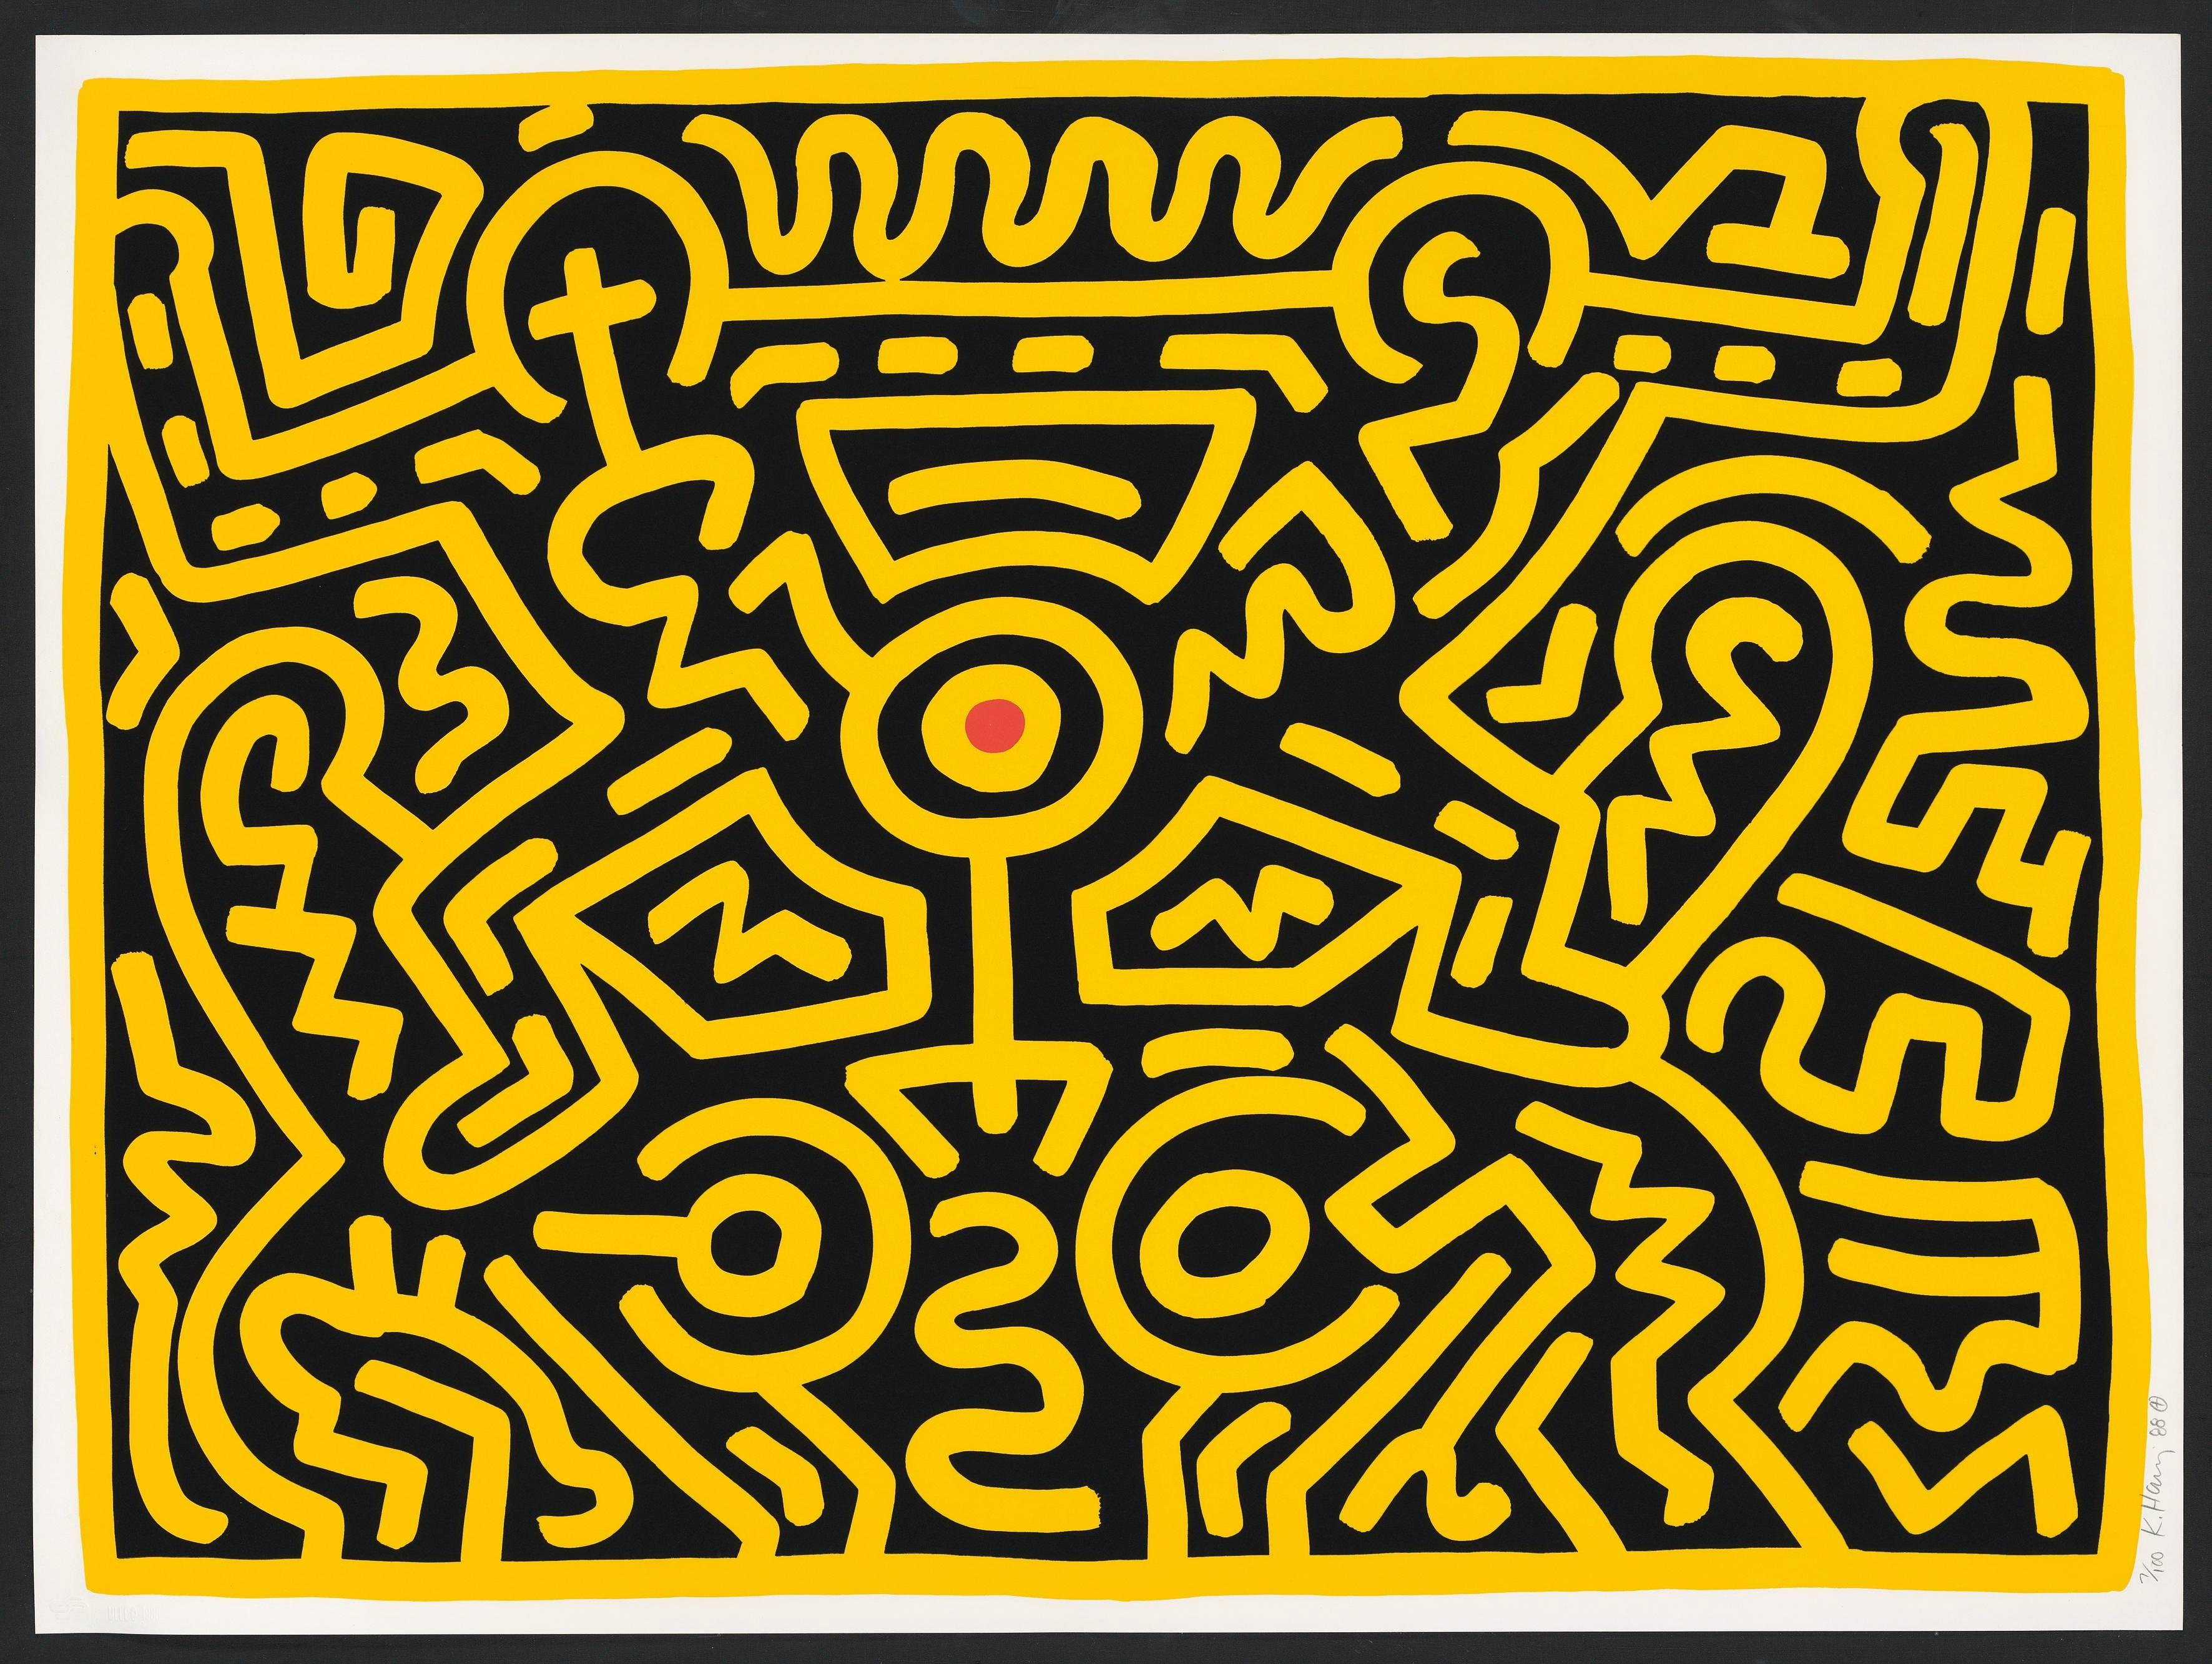 Keith Haring - Plate IV, from Growing Suite, Print For Sale at 1stdibs